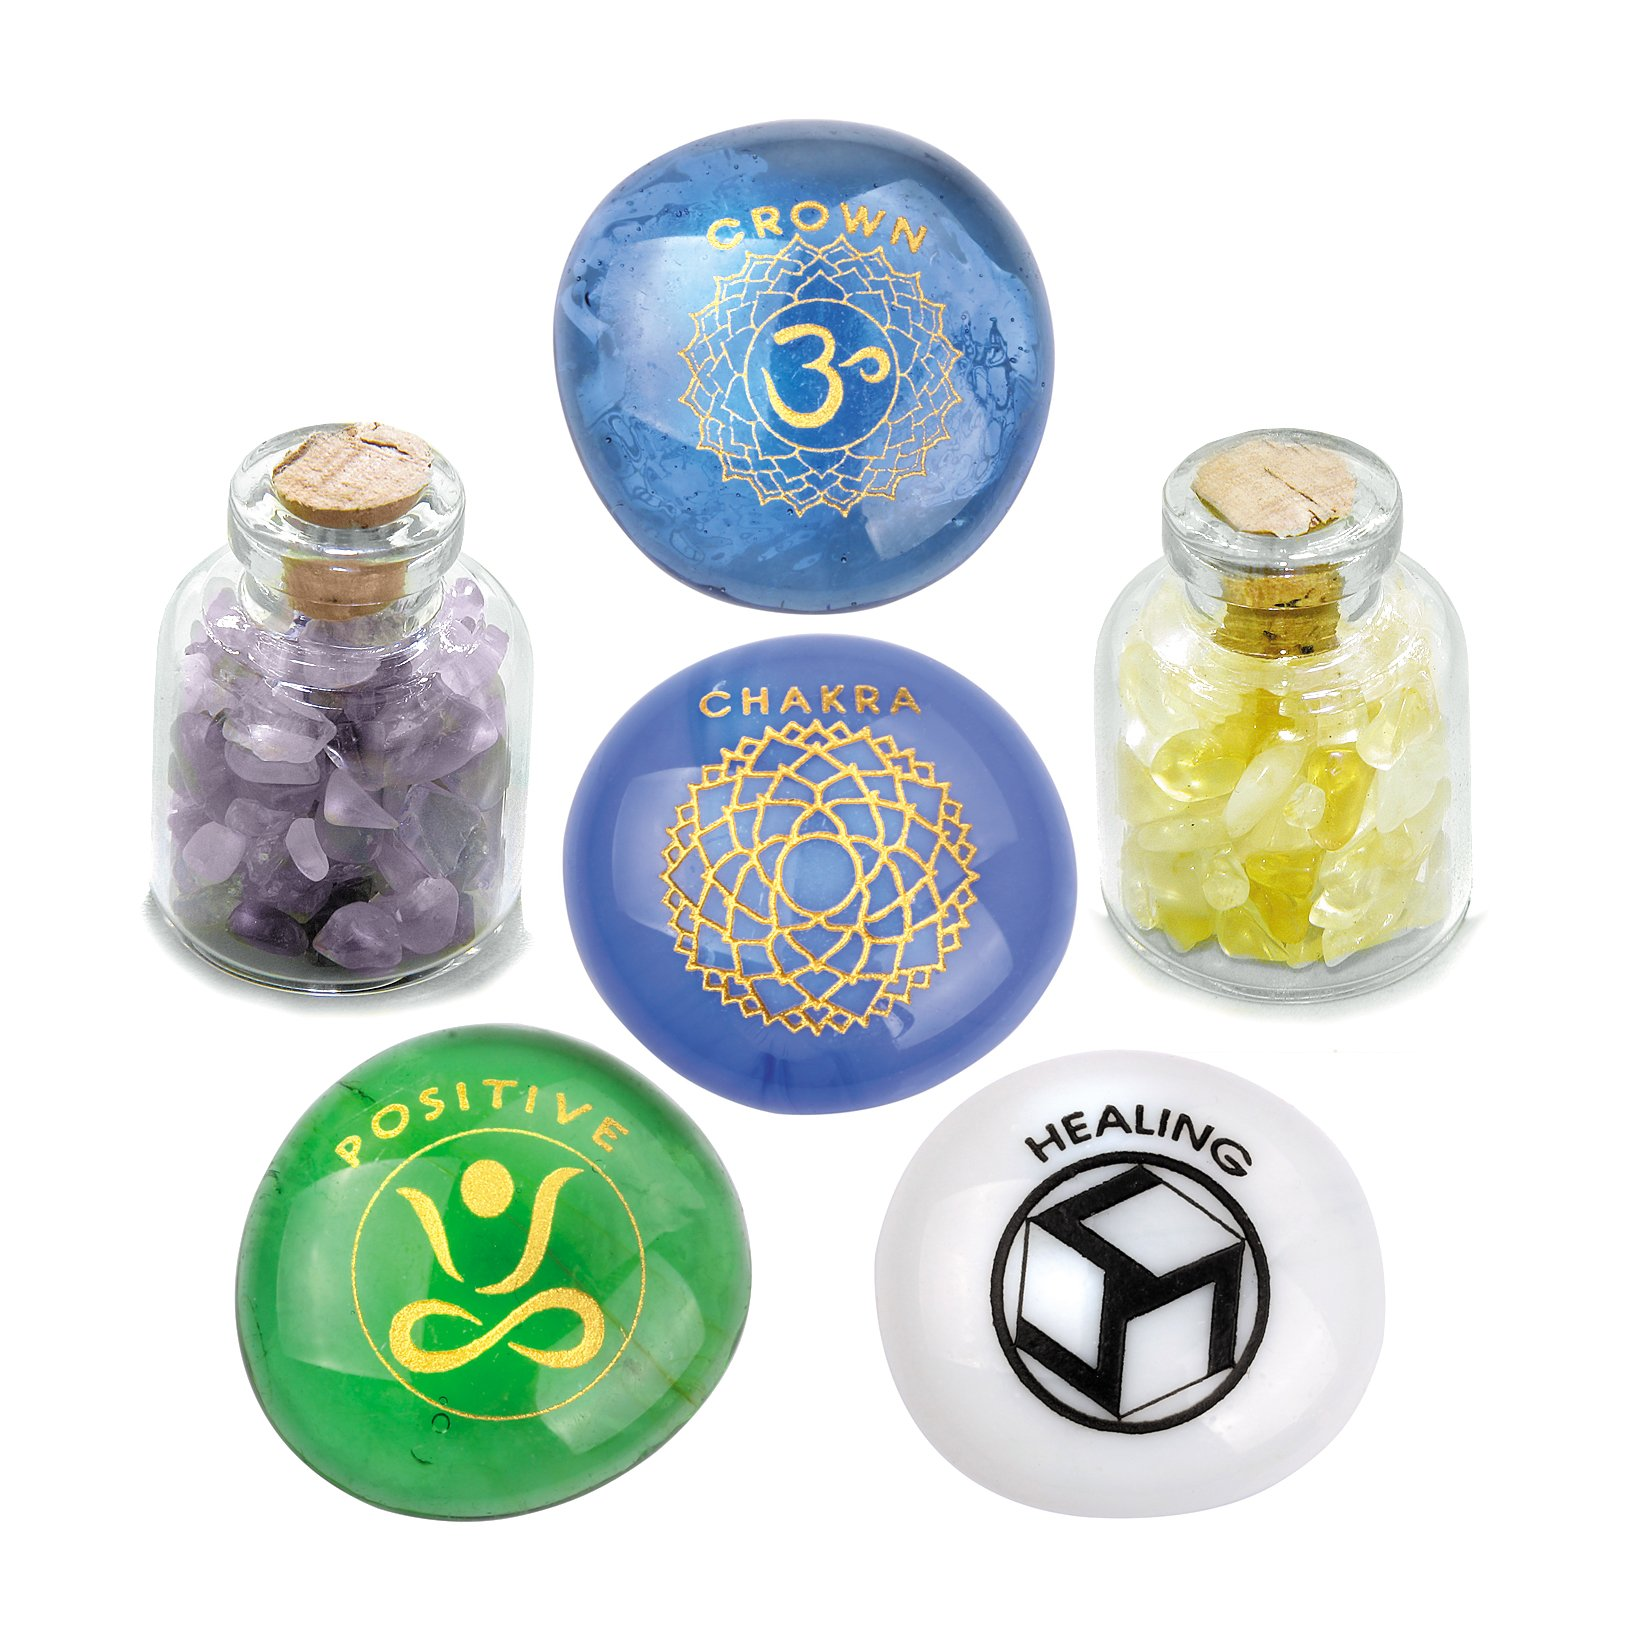 Crown Om Chakra Magic Positive Healing Inspirational Amulets Glass Stones Amethyst Citrine Bottles